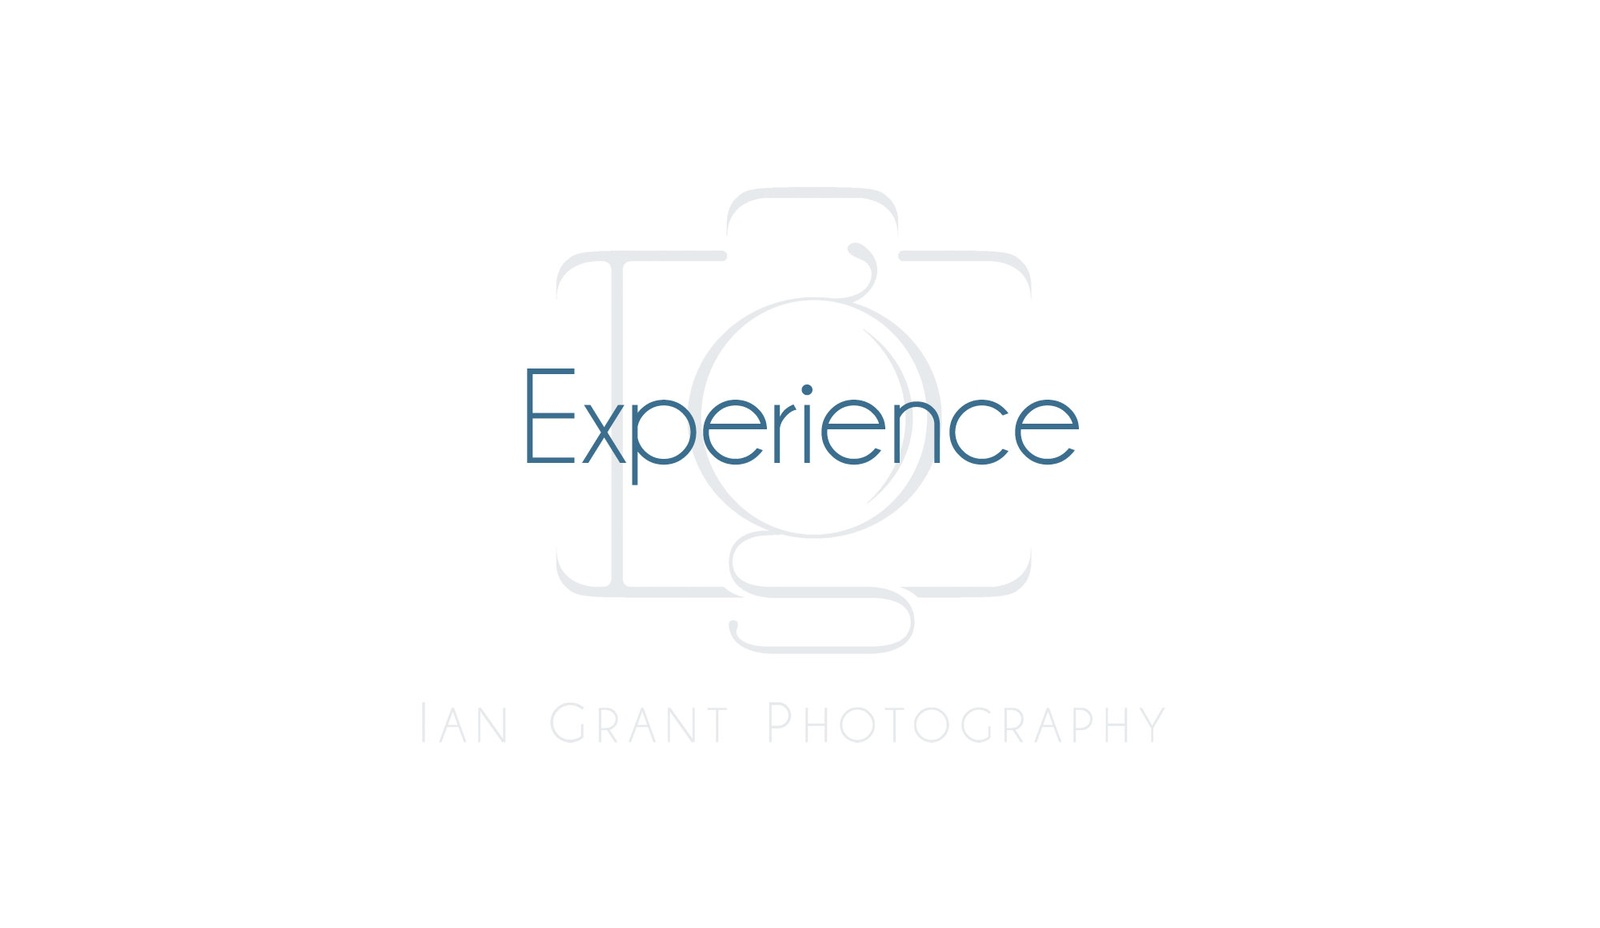 Commercial Photography Toronto by Ian Grant - Commercial Photographer Edmonton